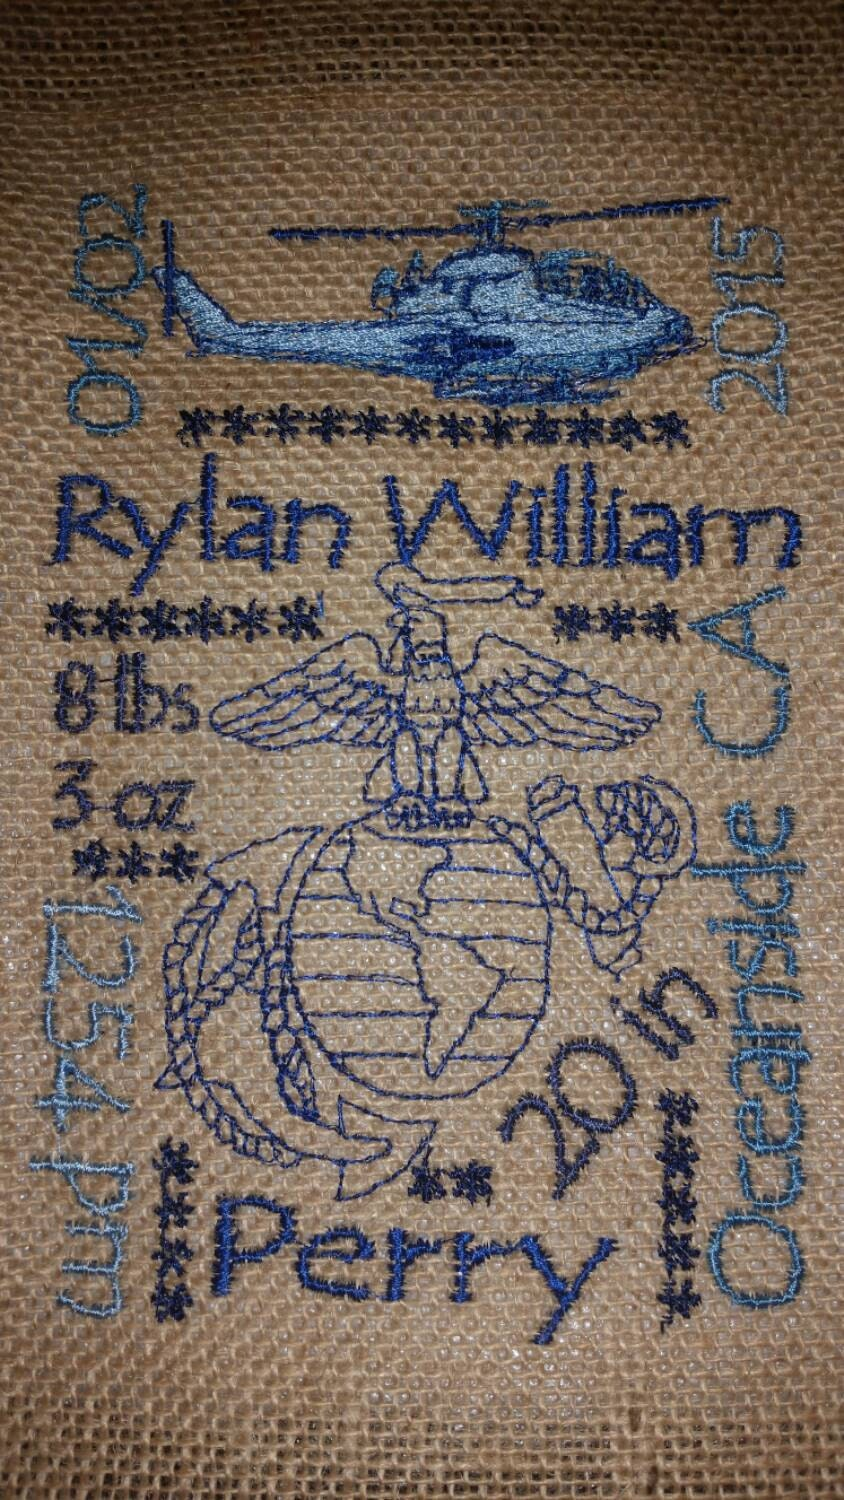 8x10 Burlap Baby Birth Announcement With Eagle Globe Anchor